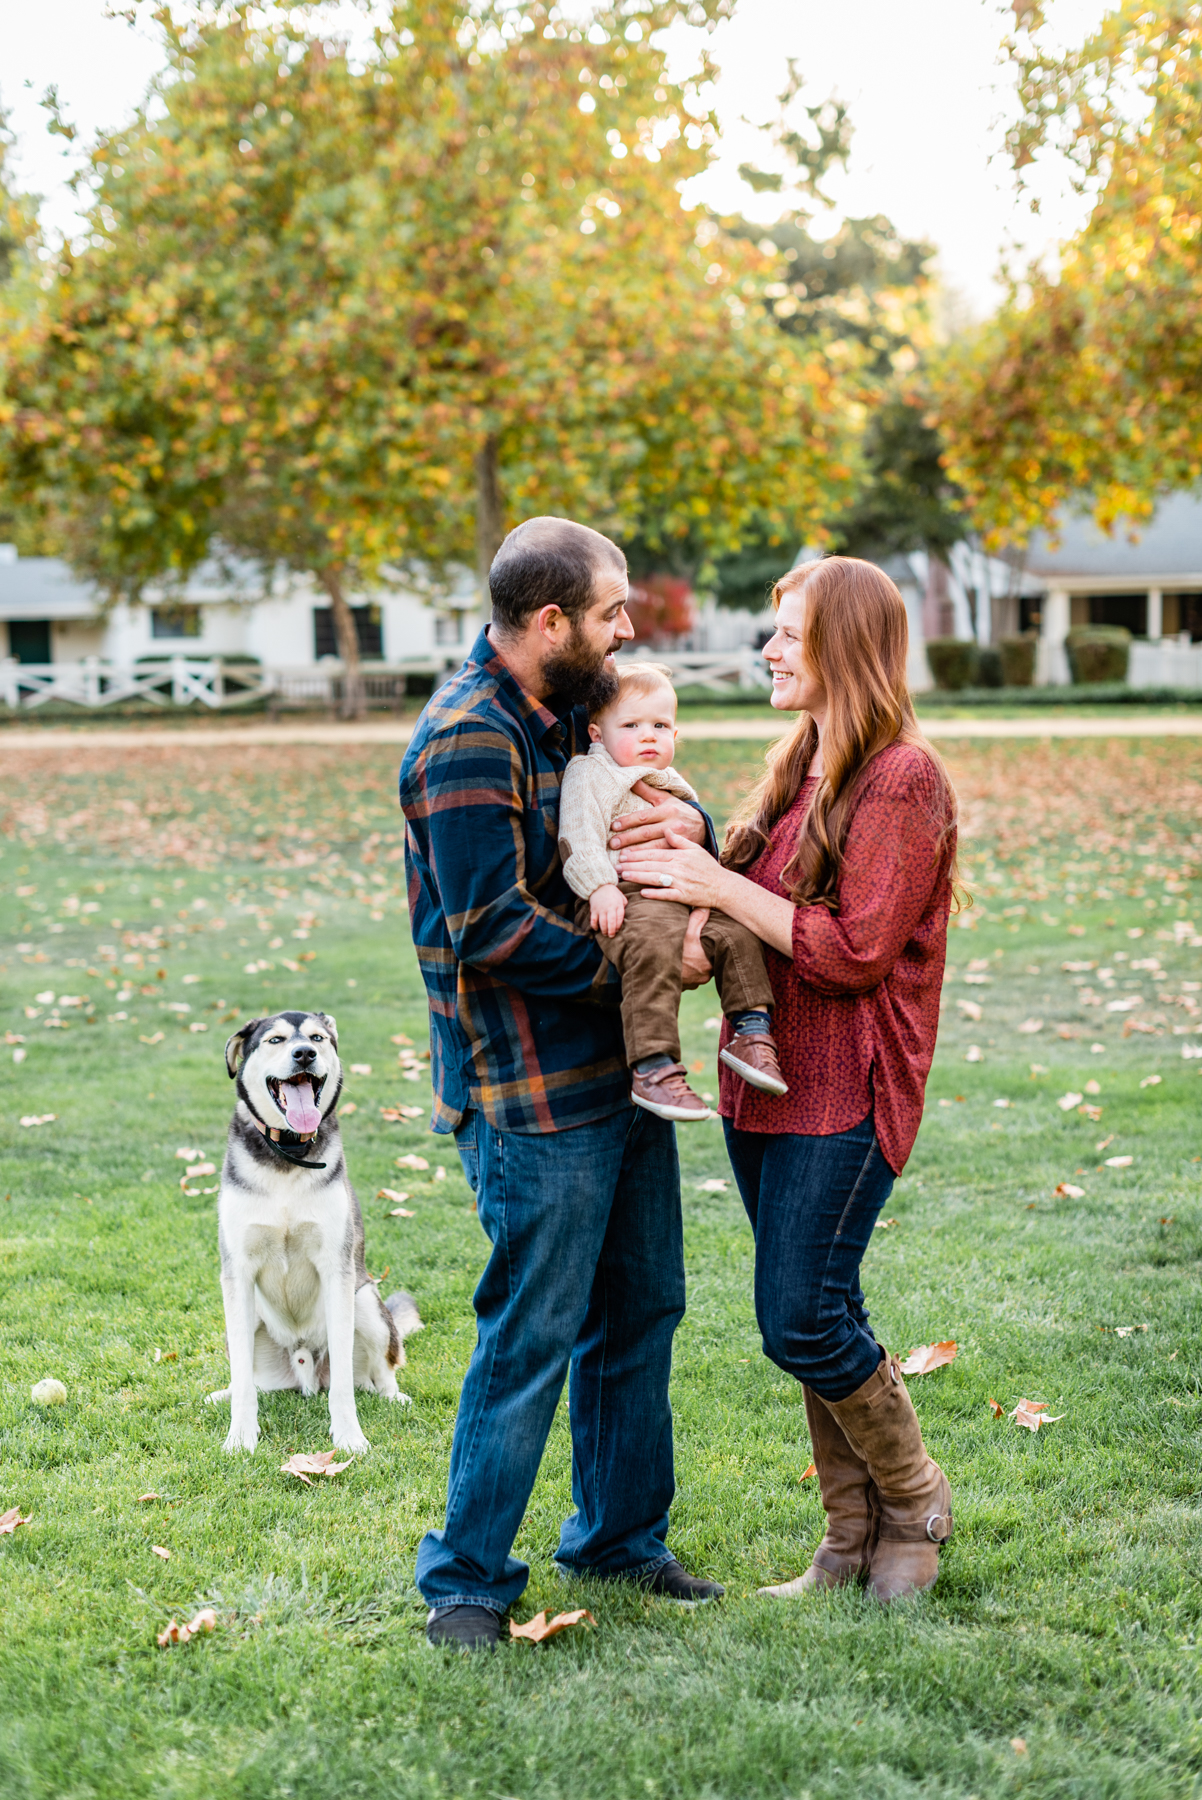 A family portrait including their dog at their family lifestyle photo session at Hap Magee Park in Danville, CA